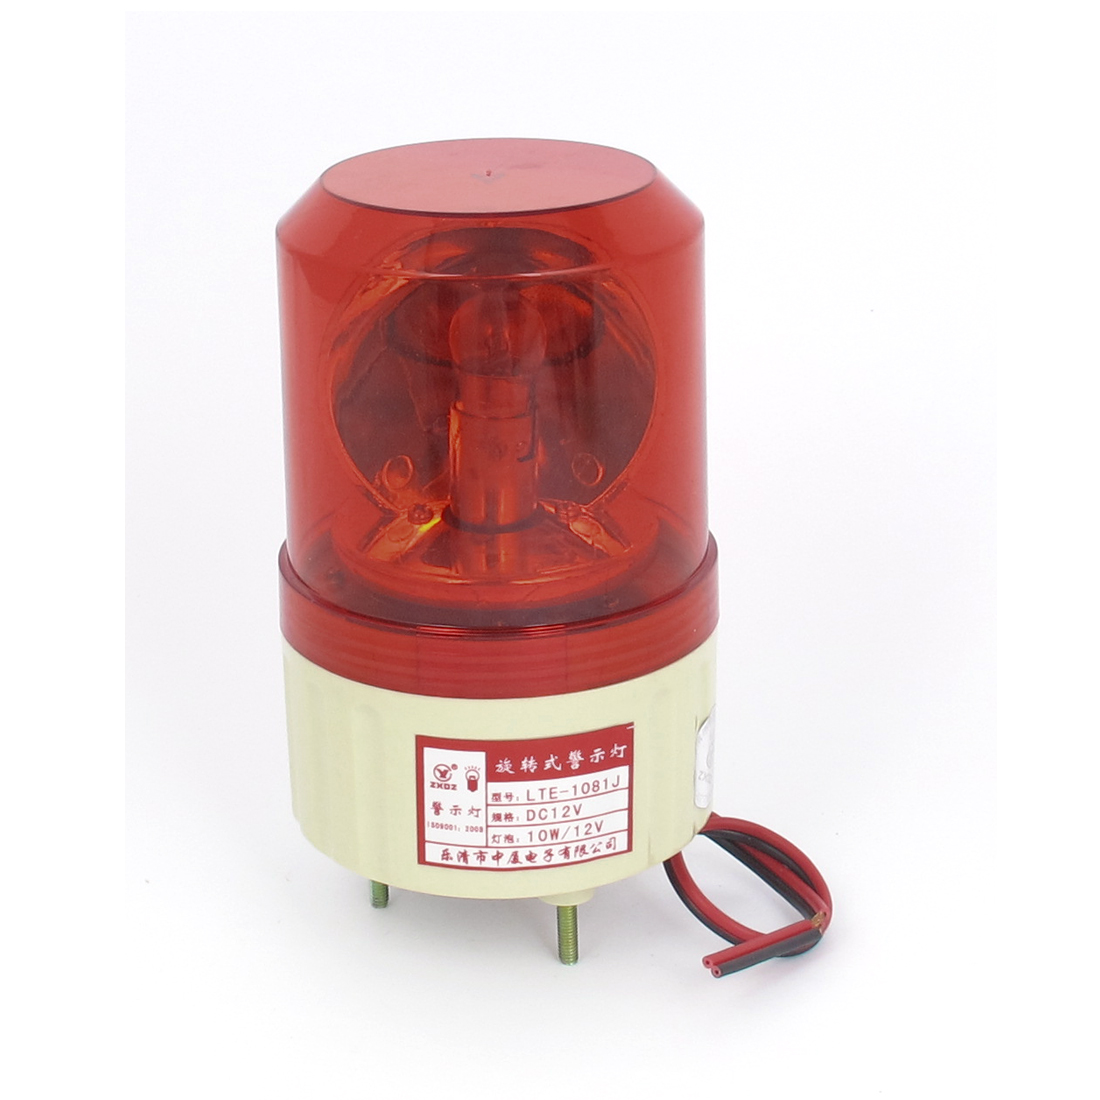 DC 12V Buzzer Sound Rotating Industrial Signal Warning Lamp Red